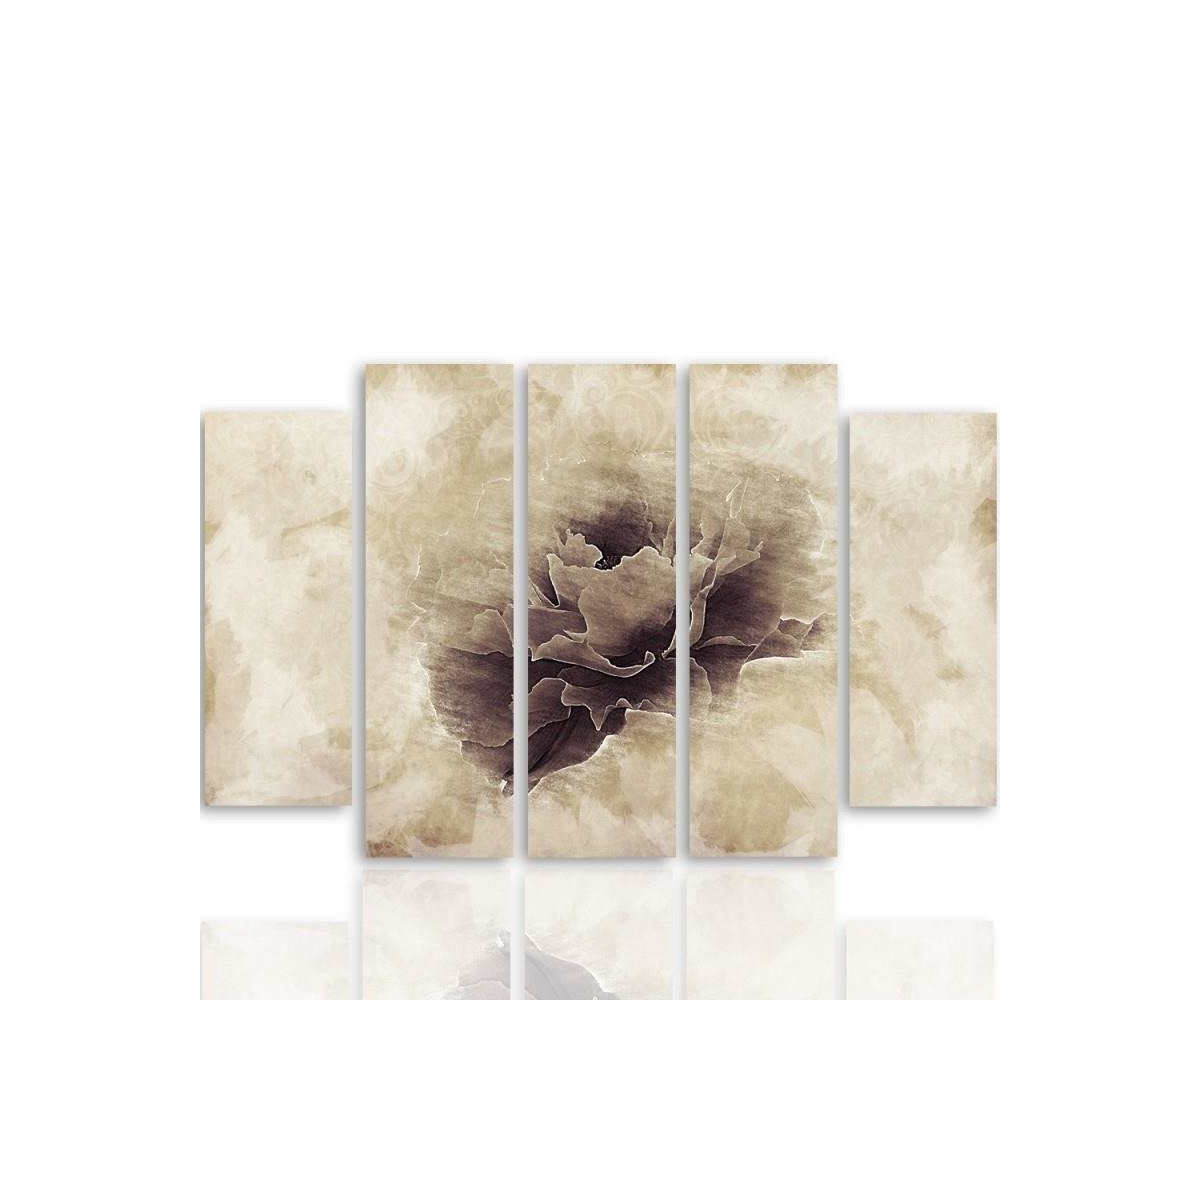 Five Part Picture On Canvas, Pentaptych, Type B, Gray Flower100x150